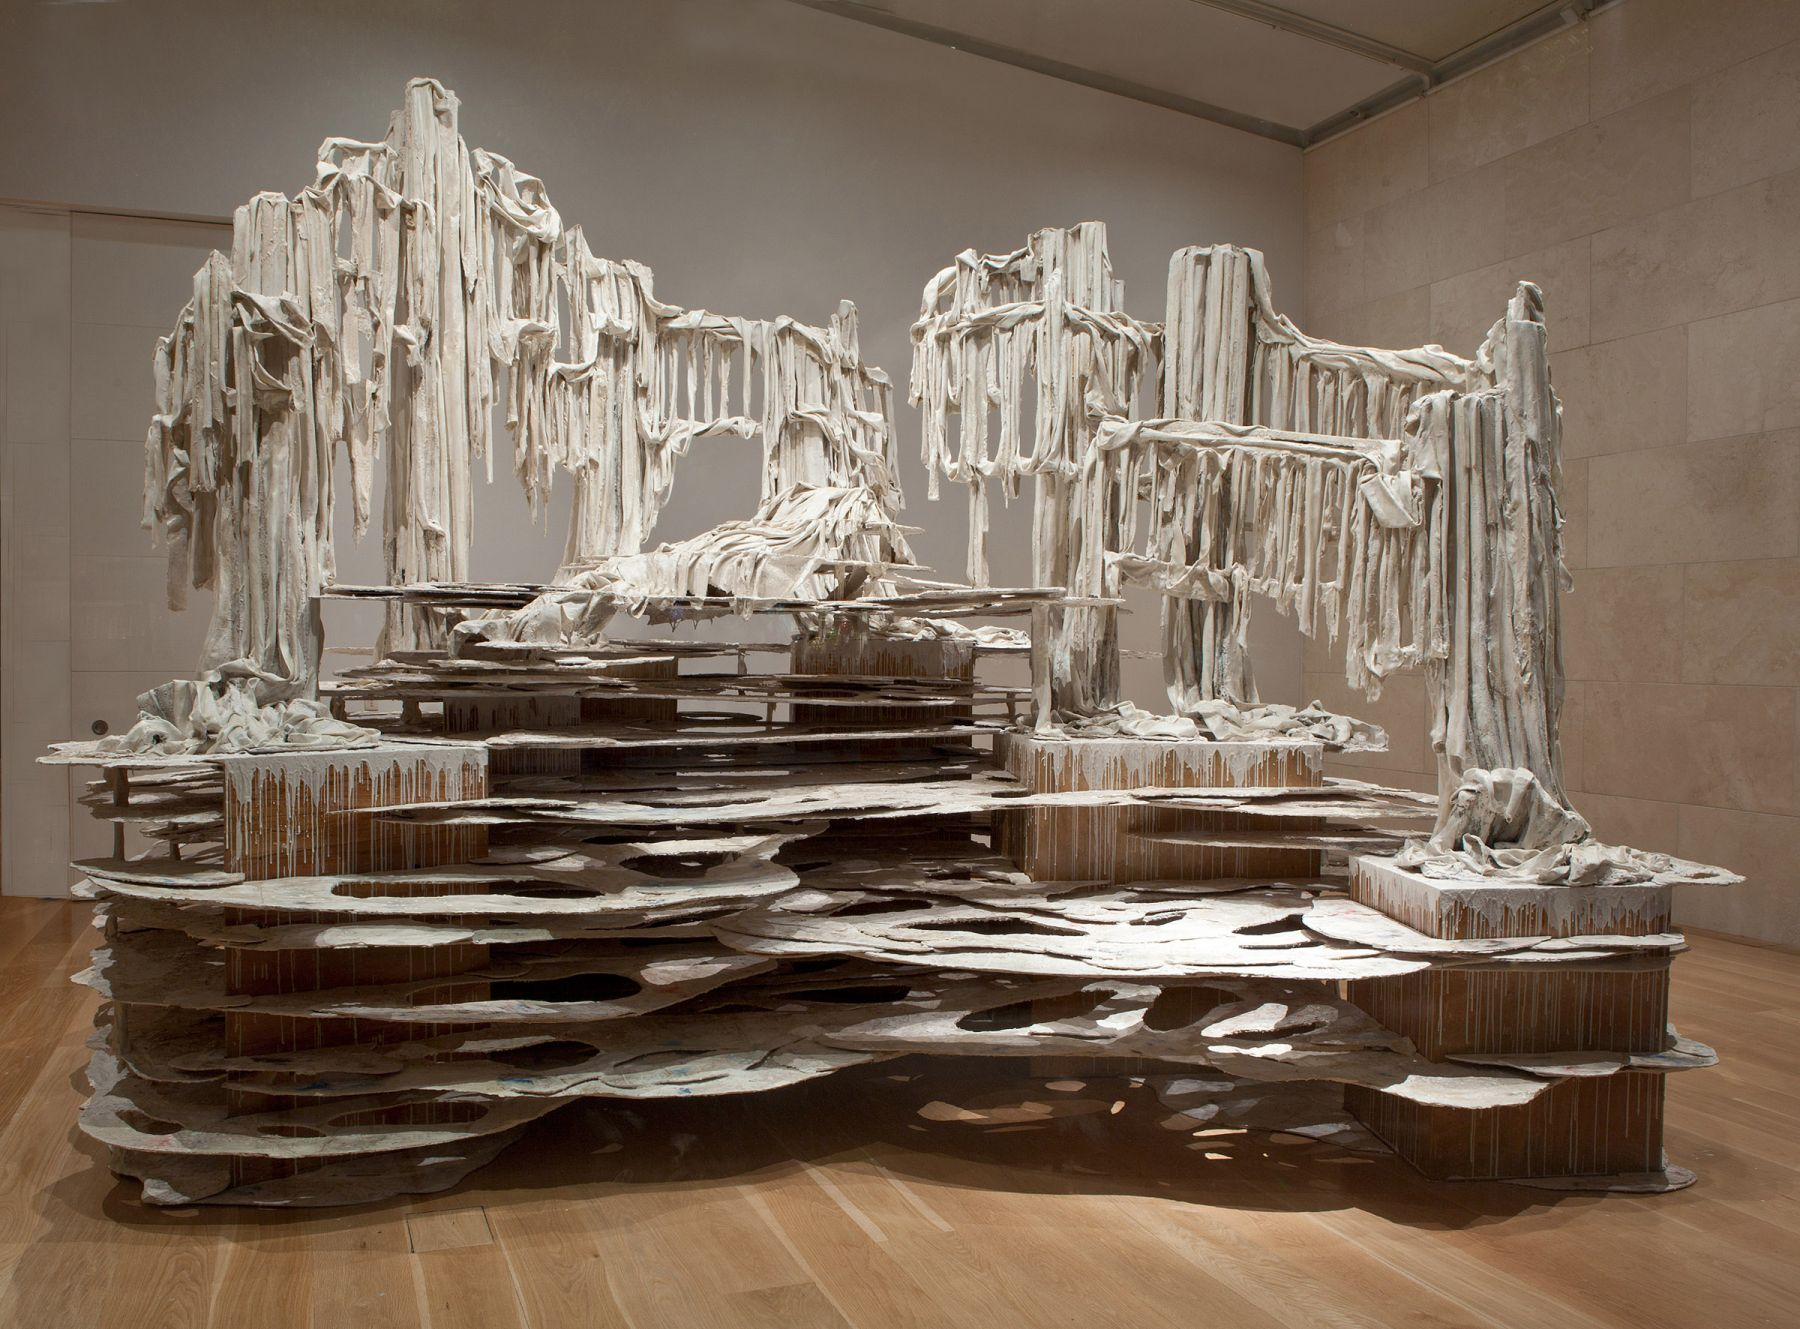 a large installation sculpture of dripping forms by Diana Al-Hadid